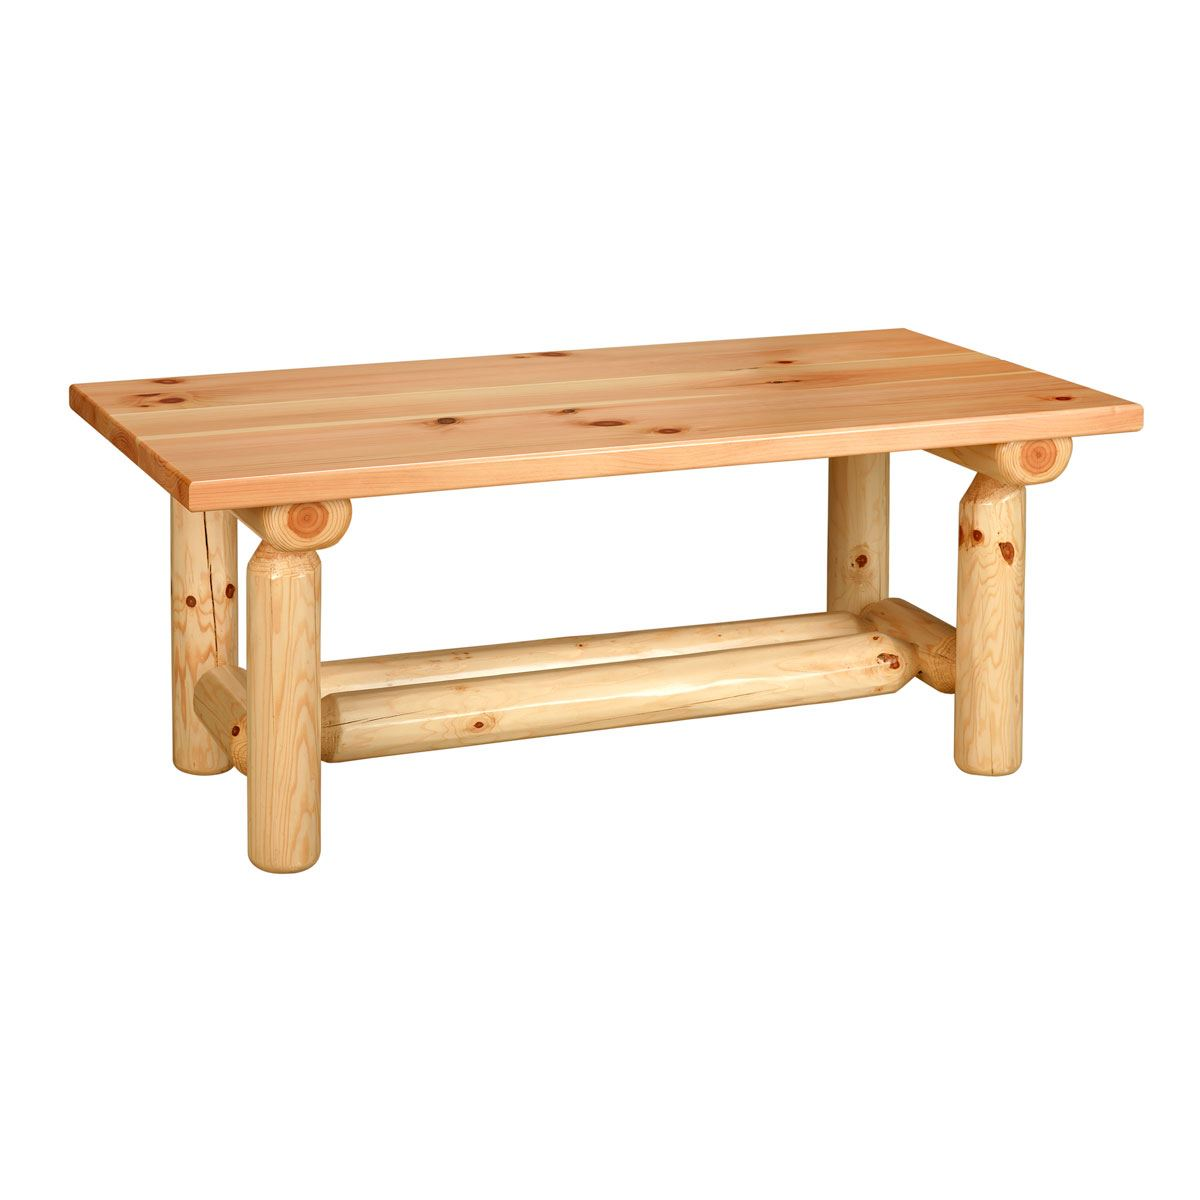 Rustic Log Pine Coffee Table Custom Dining Furniture Kitchen Dinettes Bedrooms Kitchen